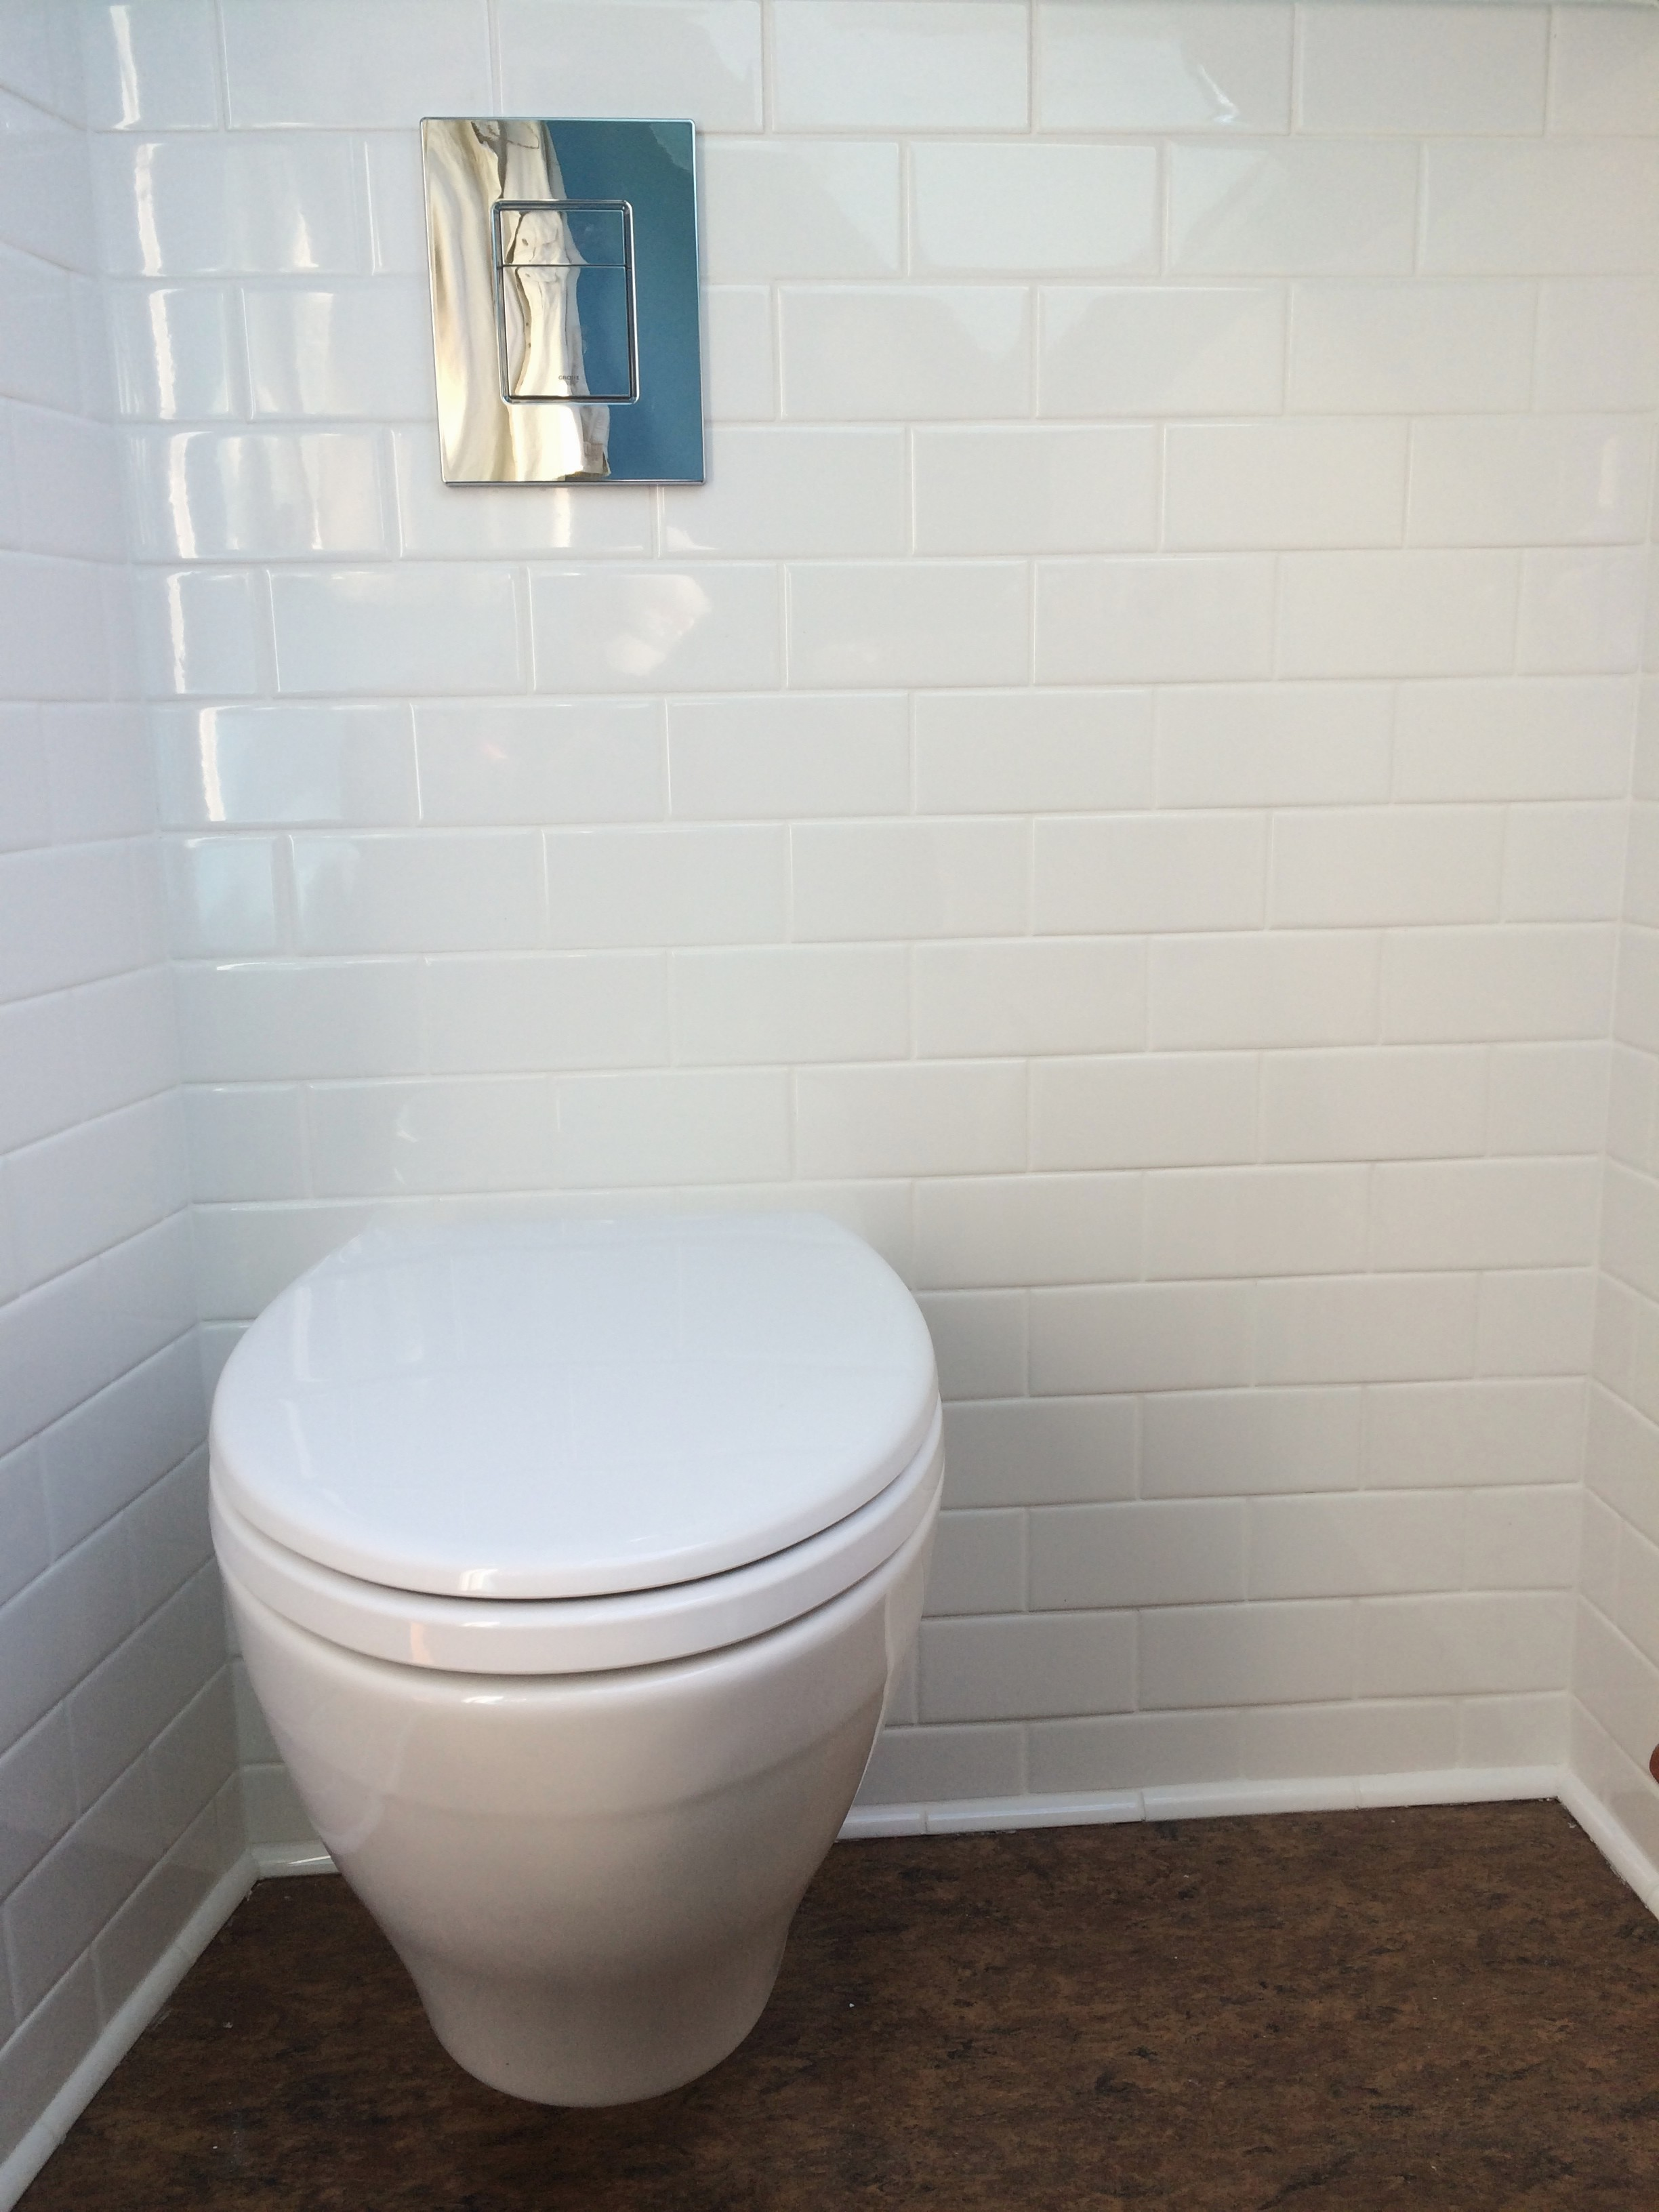 Toto Toilets on brown floor matched with white bricked wall for inspiring toilet decor ideas